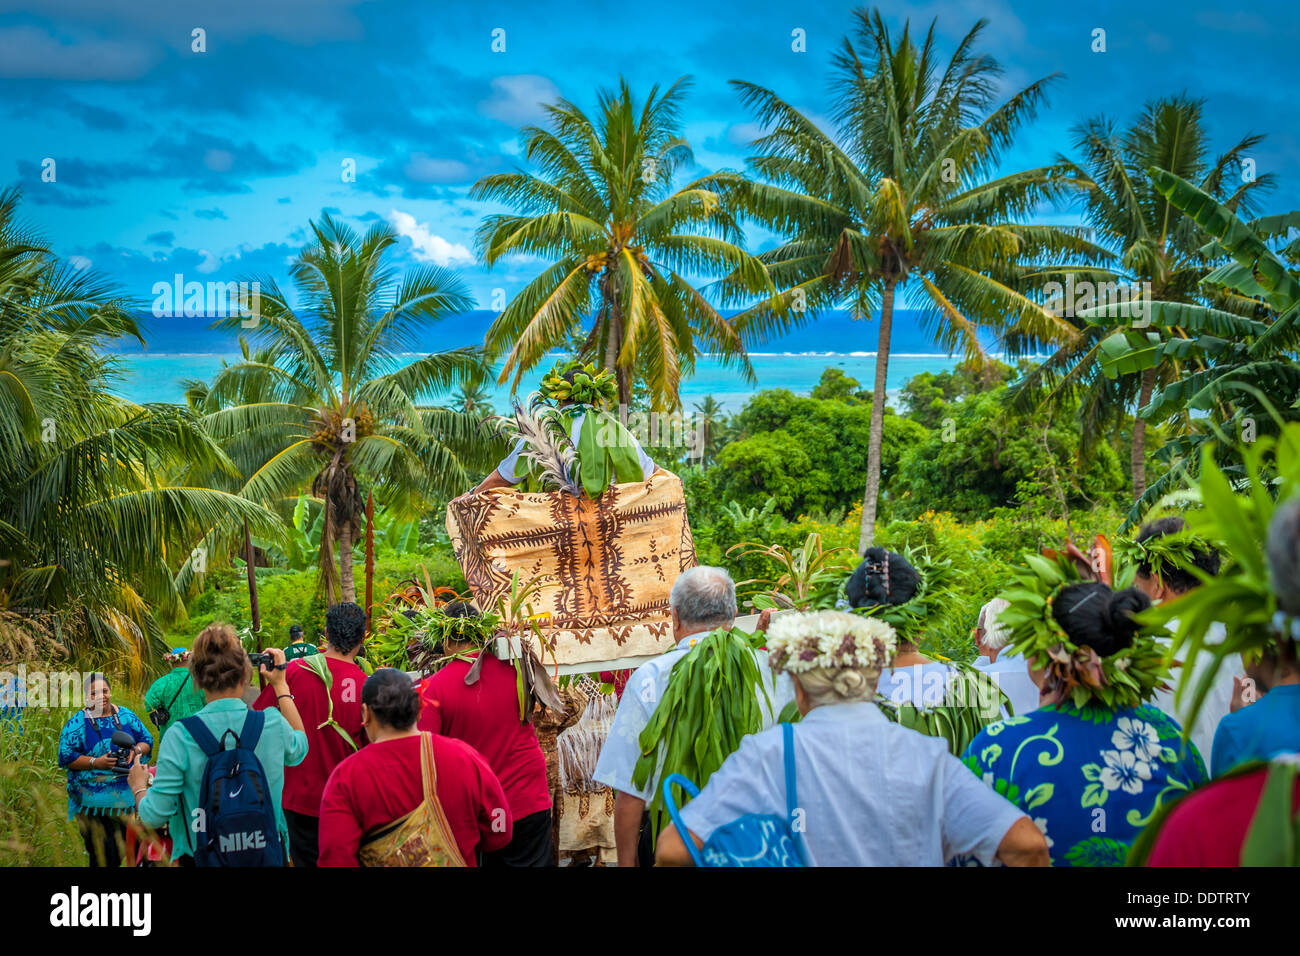 Aitutaki, Makirau Haurua in traditional costume being carried on a throne during his investiture - Cook Islands, South Pacific - Stock Image